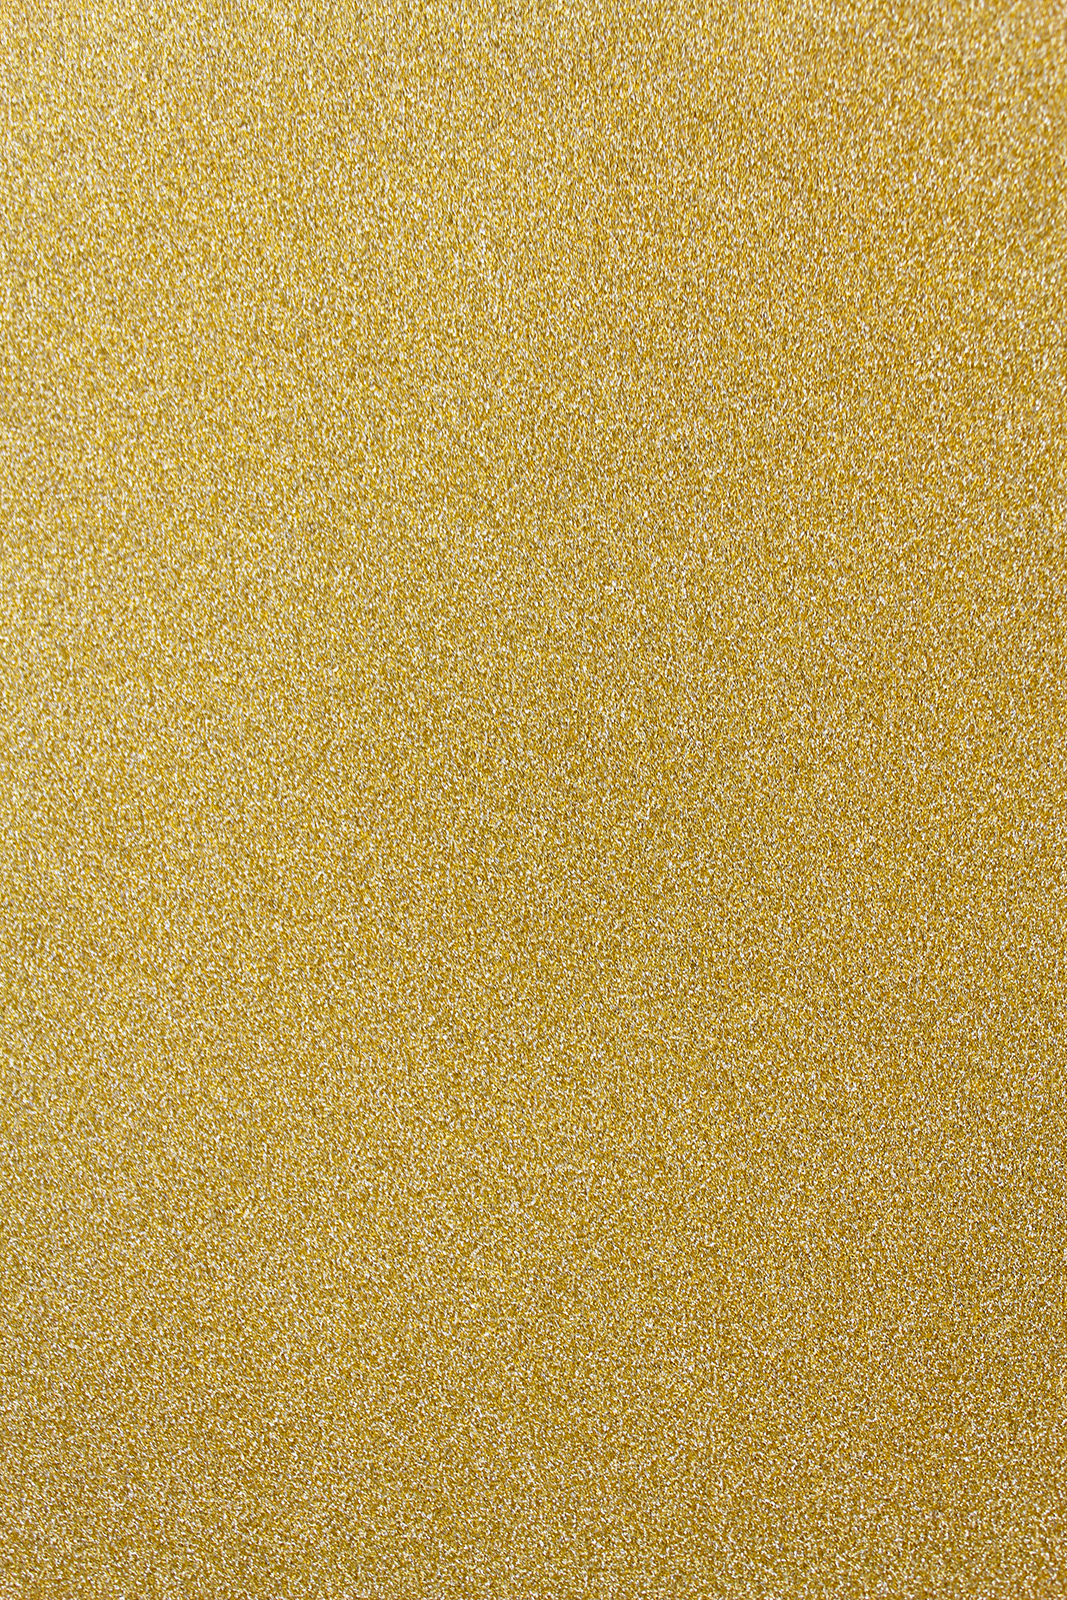 Gold Foil Craft Supplies